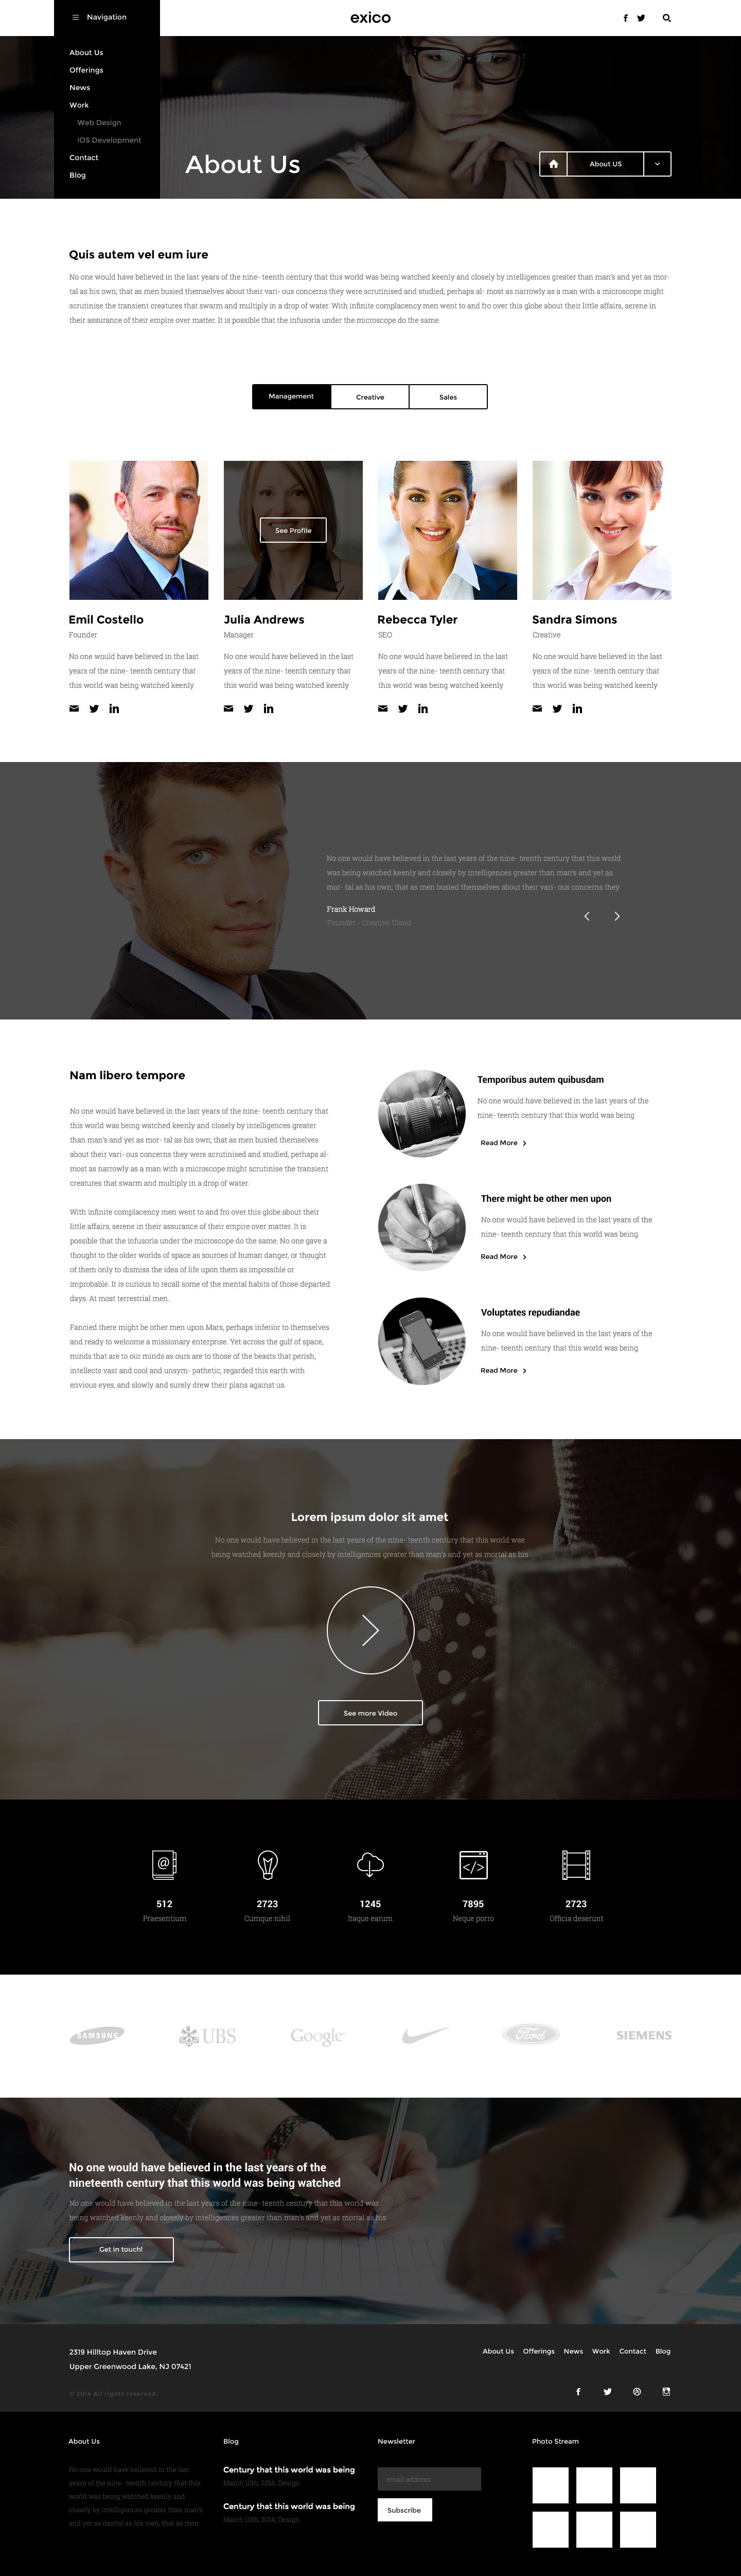 Exico - Corporate HTML Template by createit-pl | ThemeForest